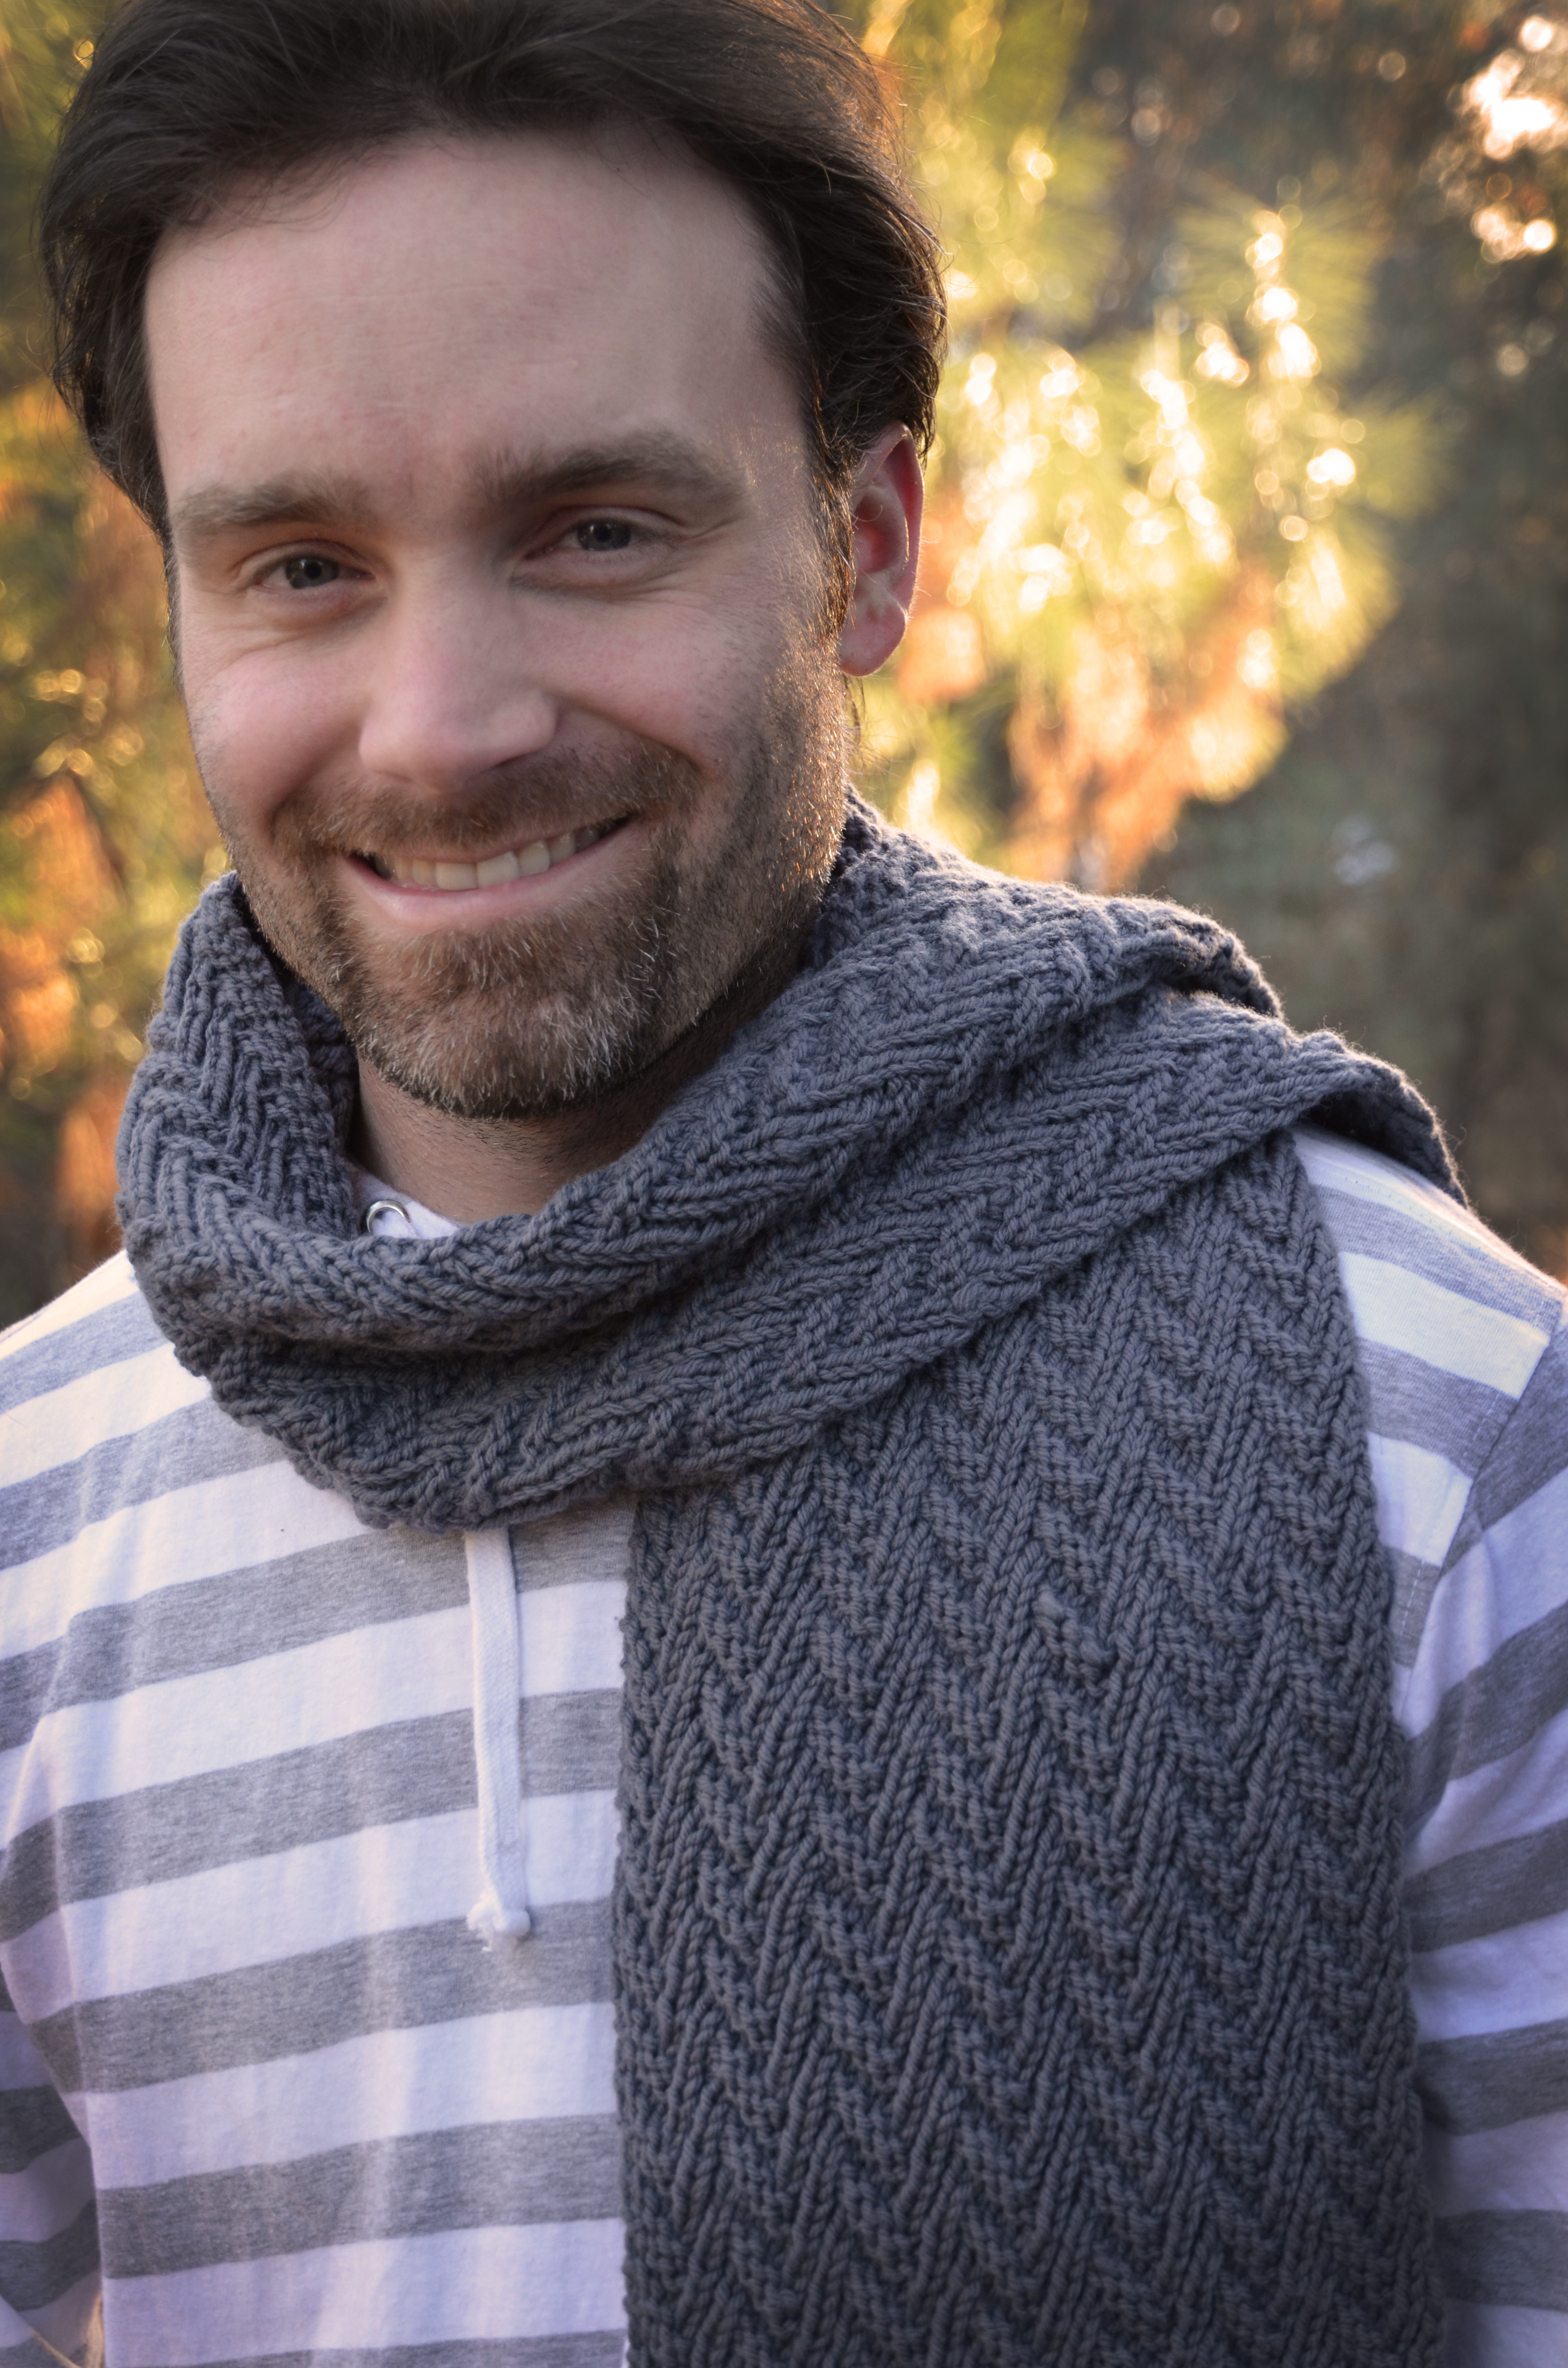 Men Scarf Knitting Pattern : Download my Knitting or Crochet Patterns   Our Curious Home